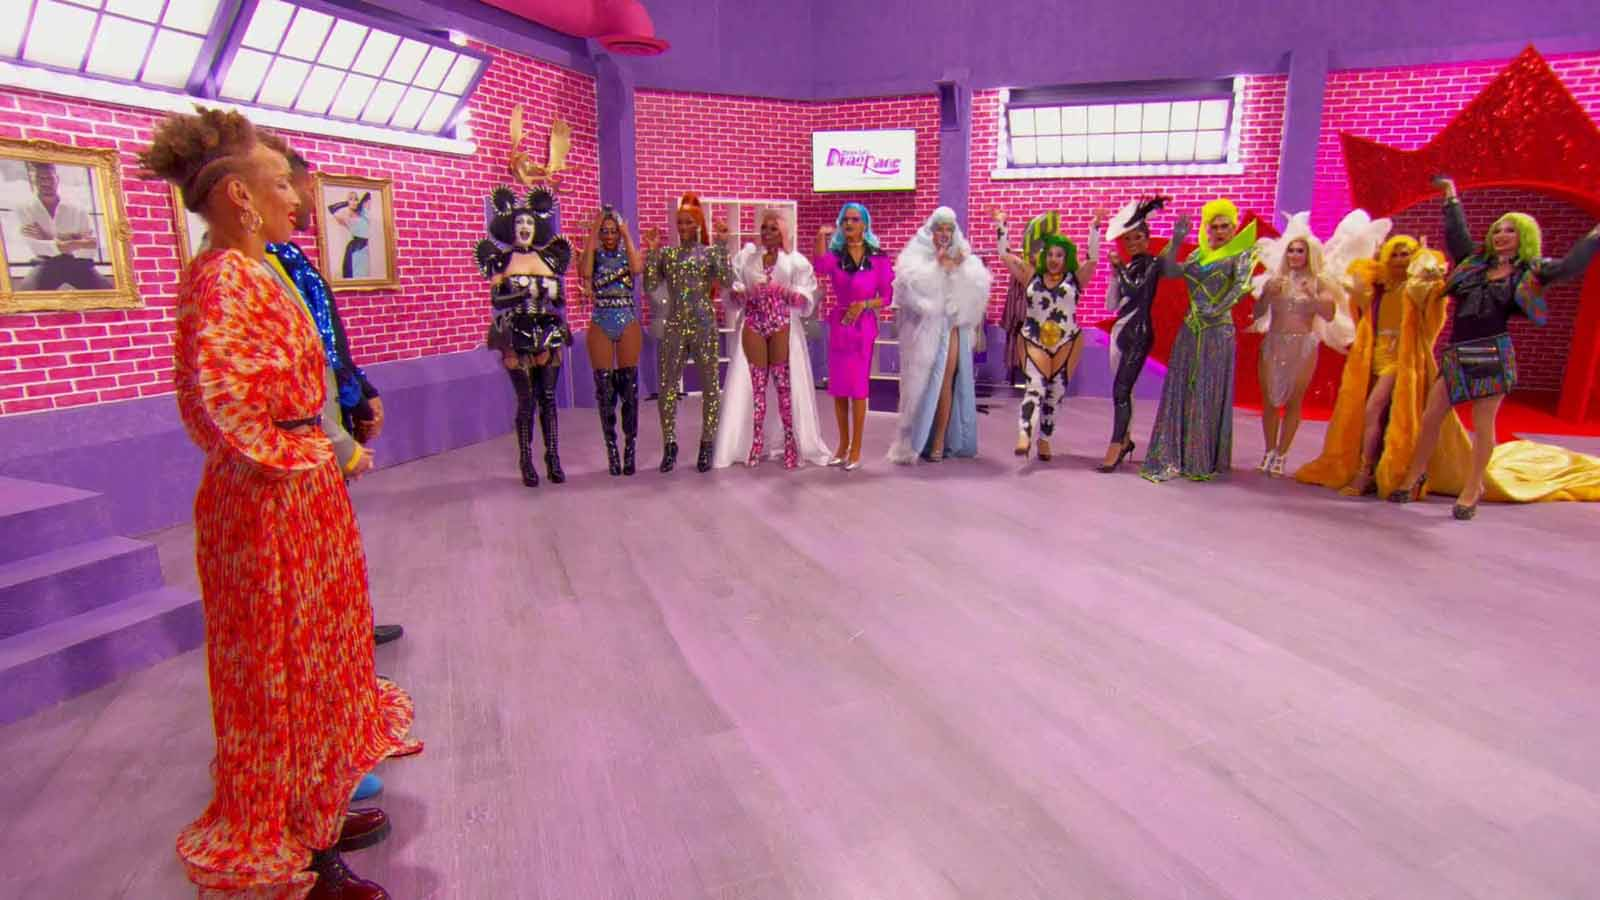 Rupaul S Drag Race Canada Is Here This Is All The Hottest Tea Film Daily